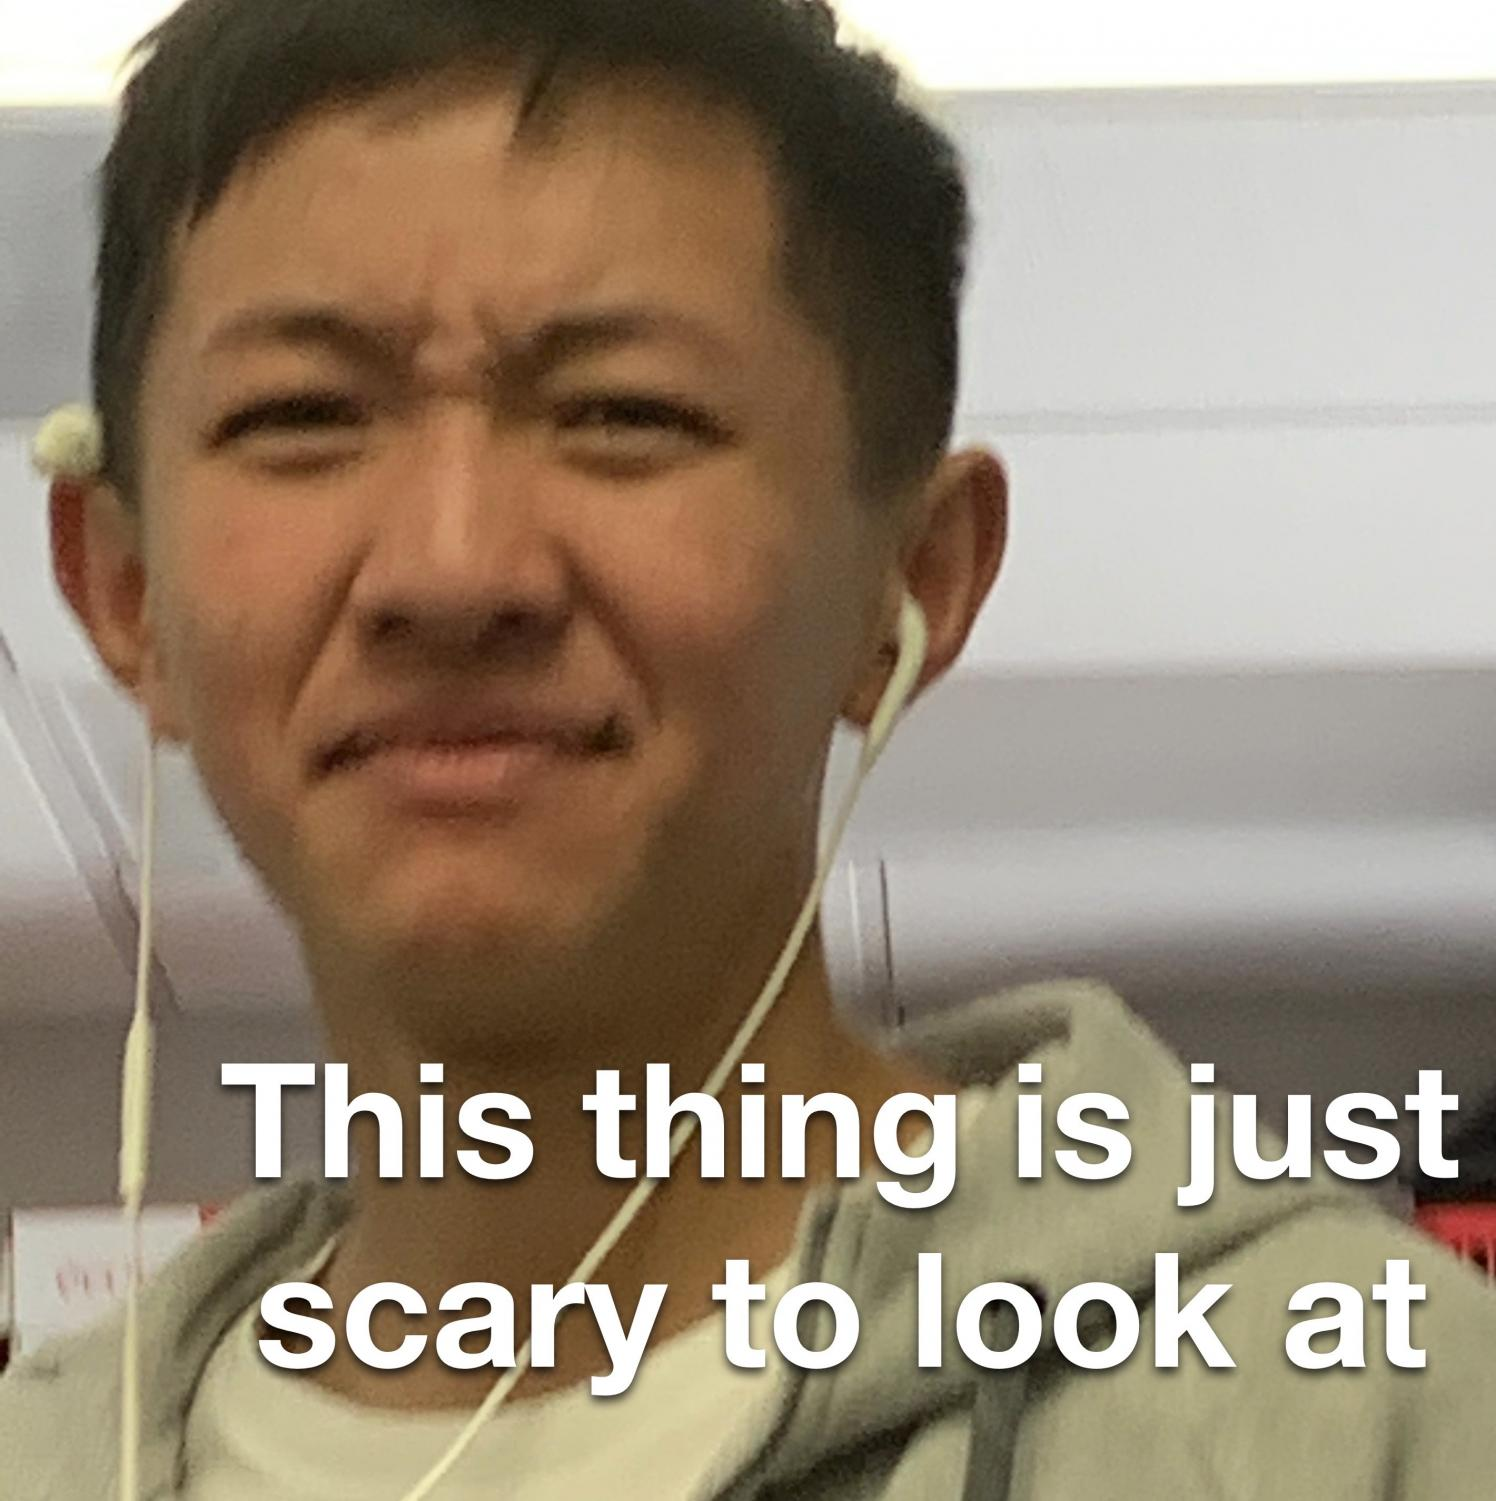 hahaha get it, because Darrius' face is scary to look at and this is an article about a scary movie